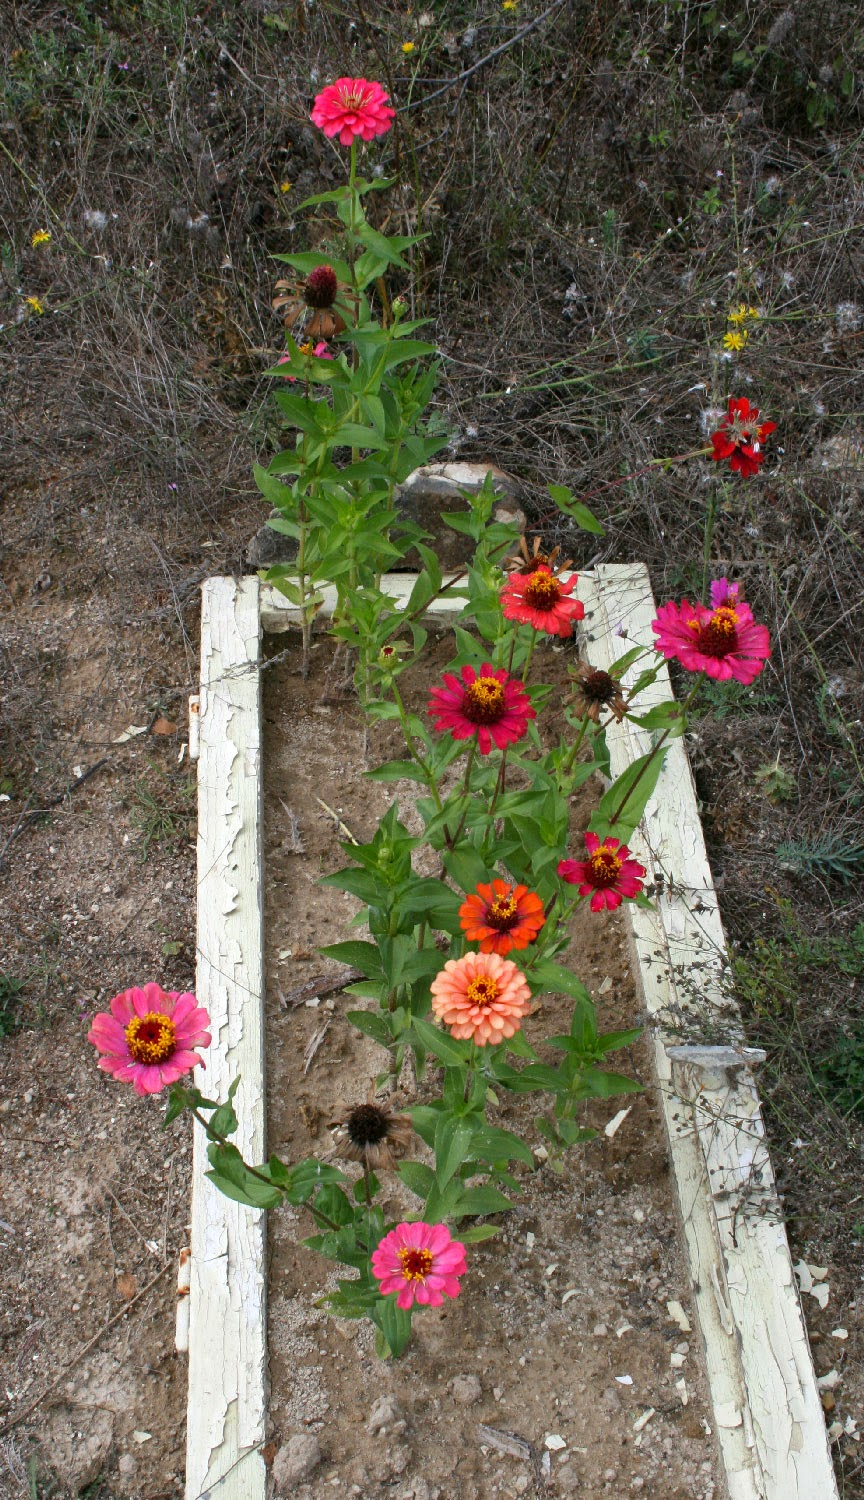 Zinnias still look lovely